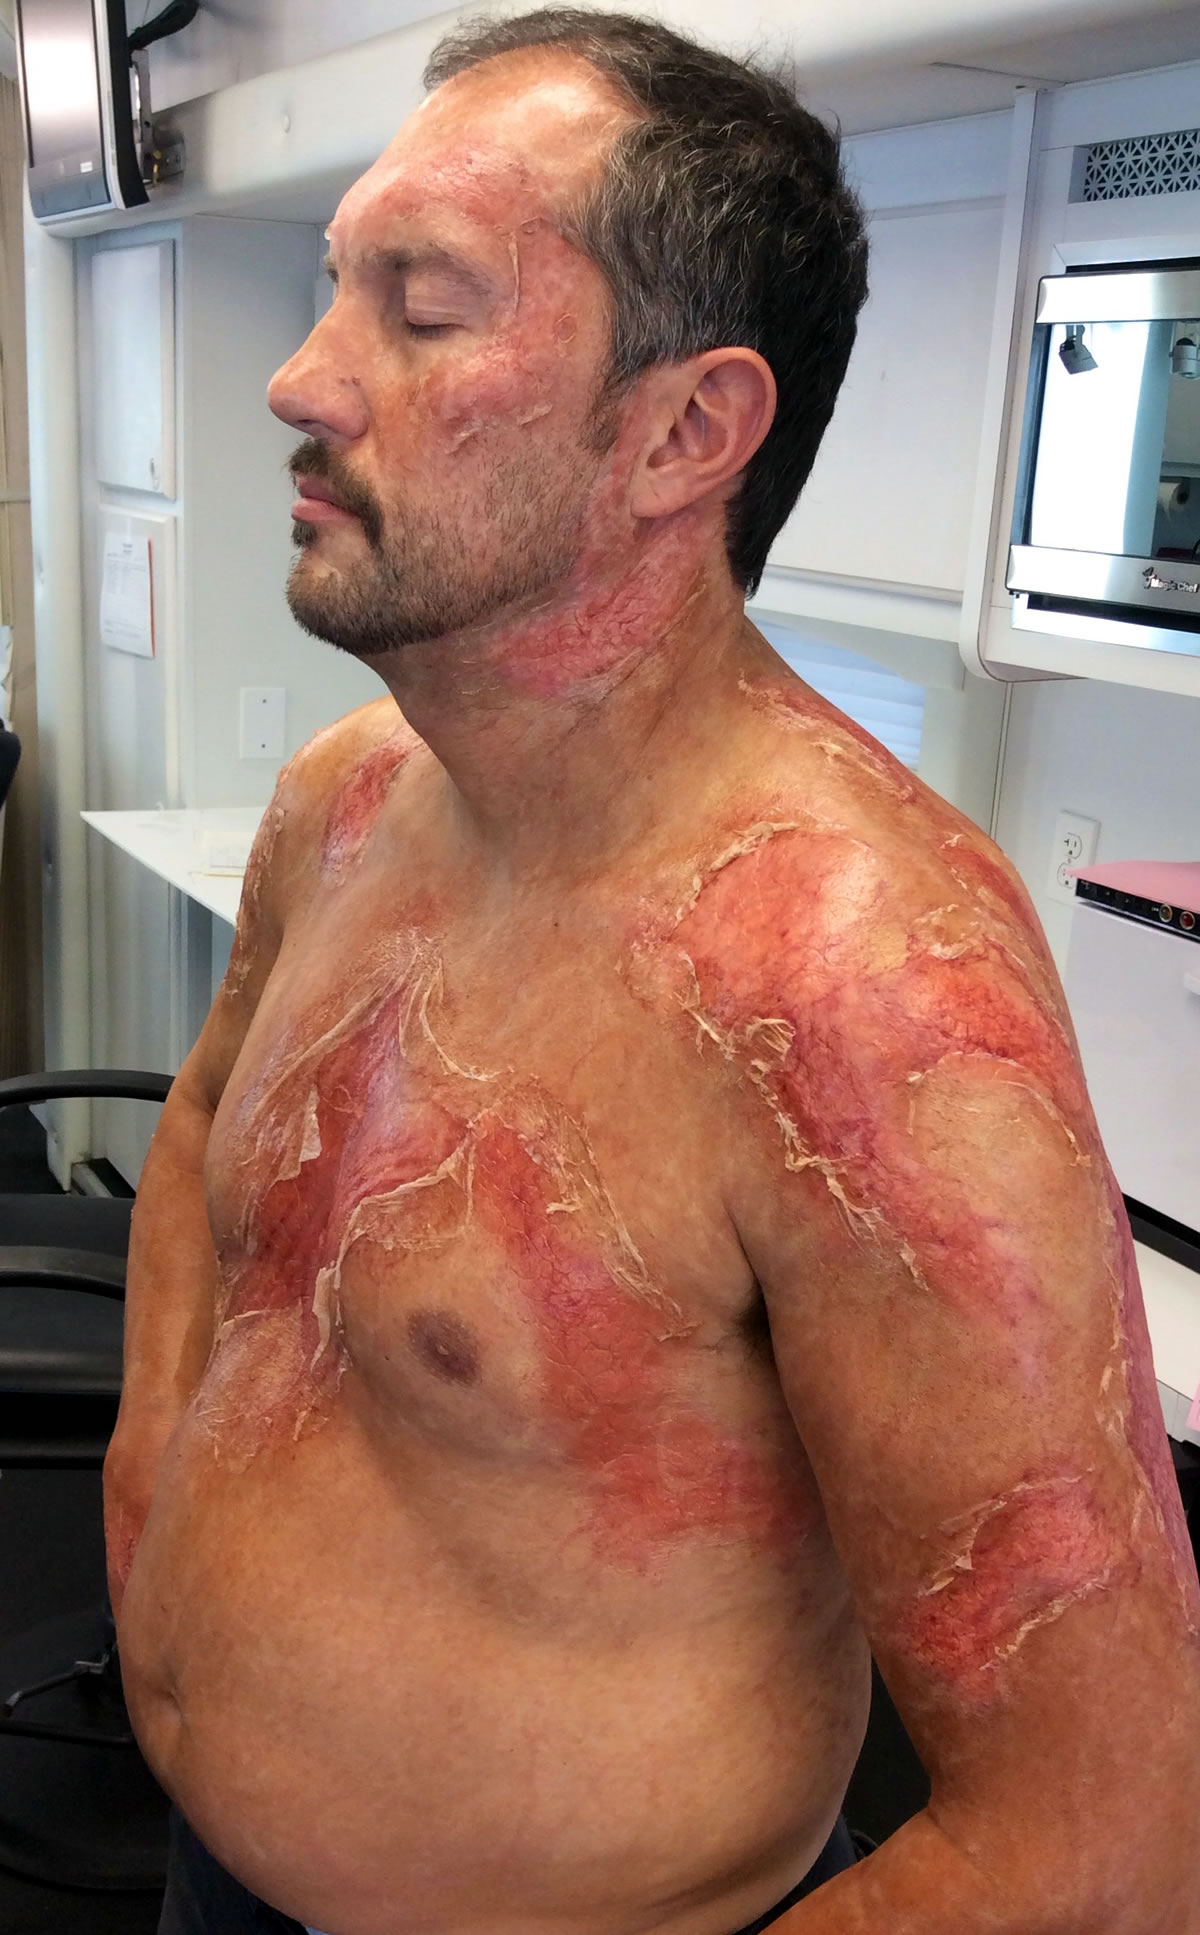 Extreme Psoriasis for the series 'Matador' on El Rey Network